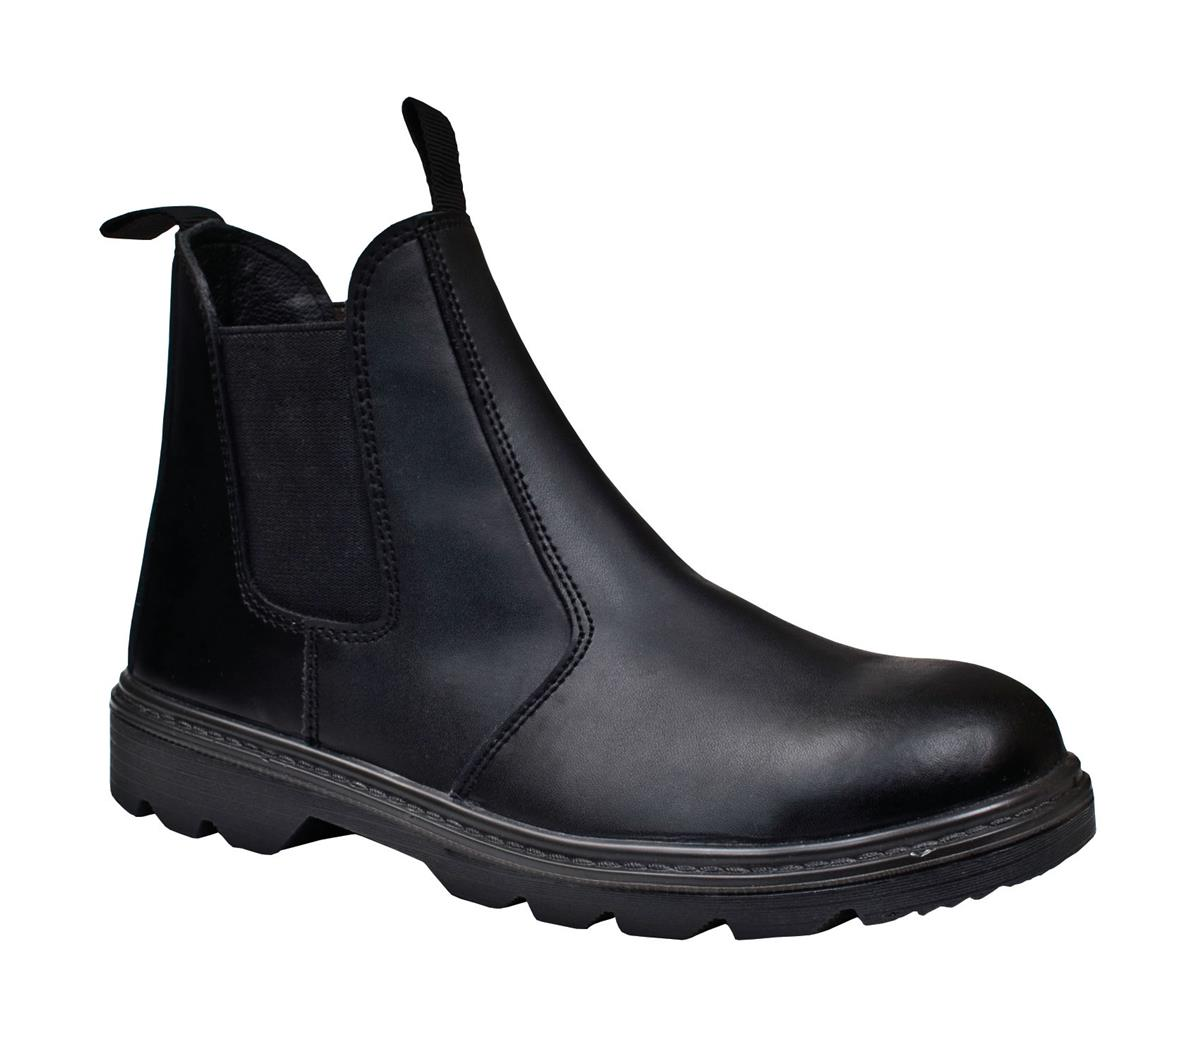 ST Dealer Boot Leather Pull-On Design with Safety Toecap Size 10 Black Ref 93275 *Approx 3 Day Leadtime*